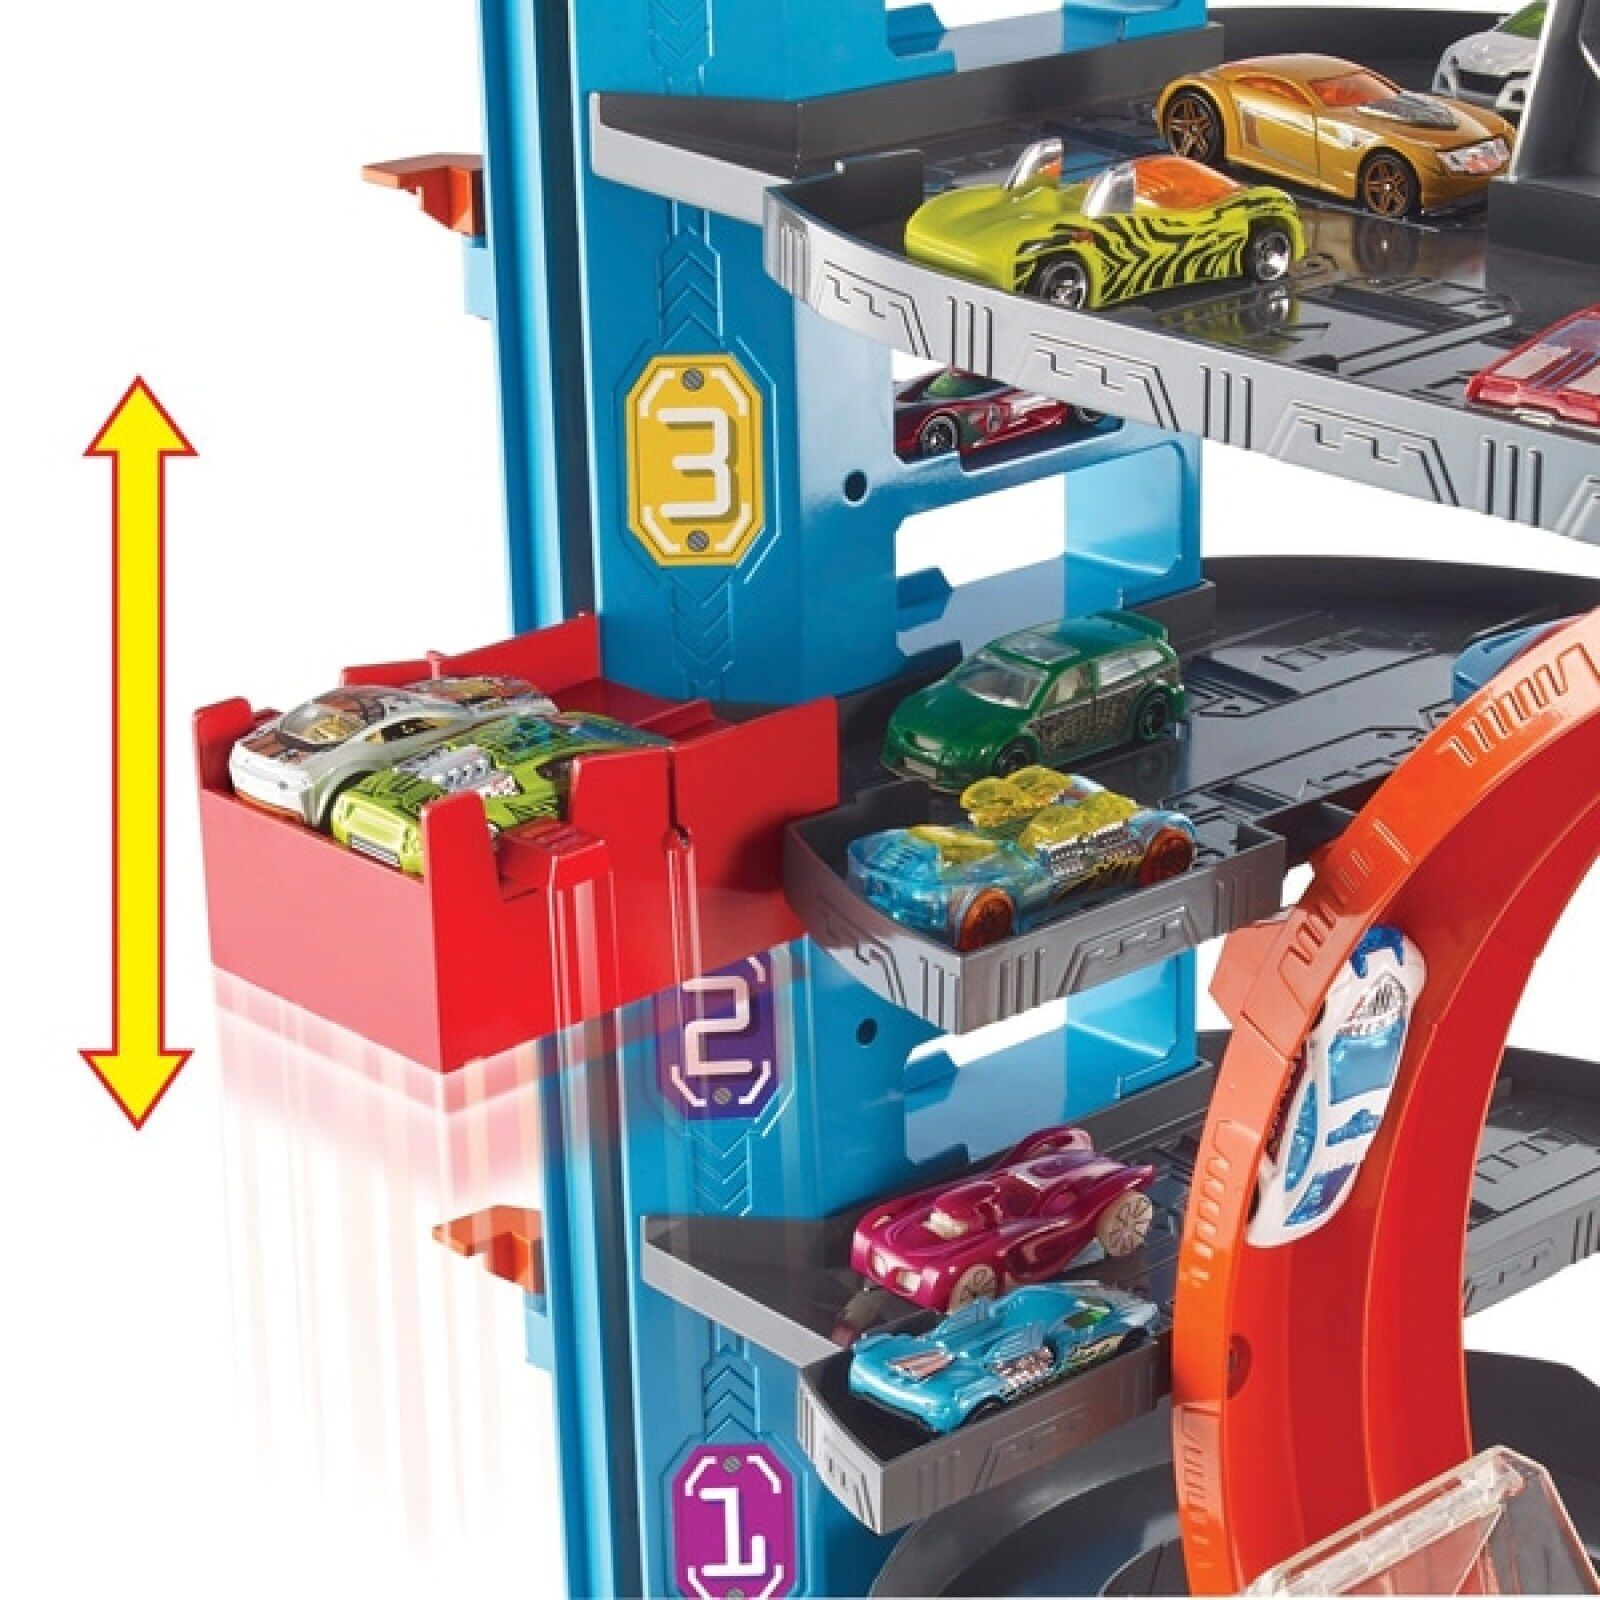 Details About Kids Toy Garage Boys Play Hot Wheels City Ultimate 2 Lifts 90 Cars E